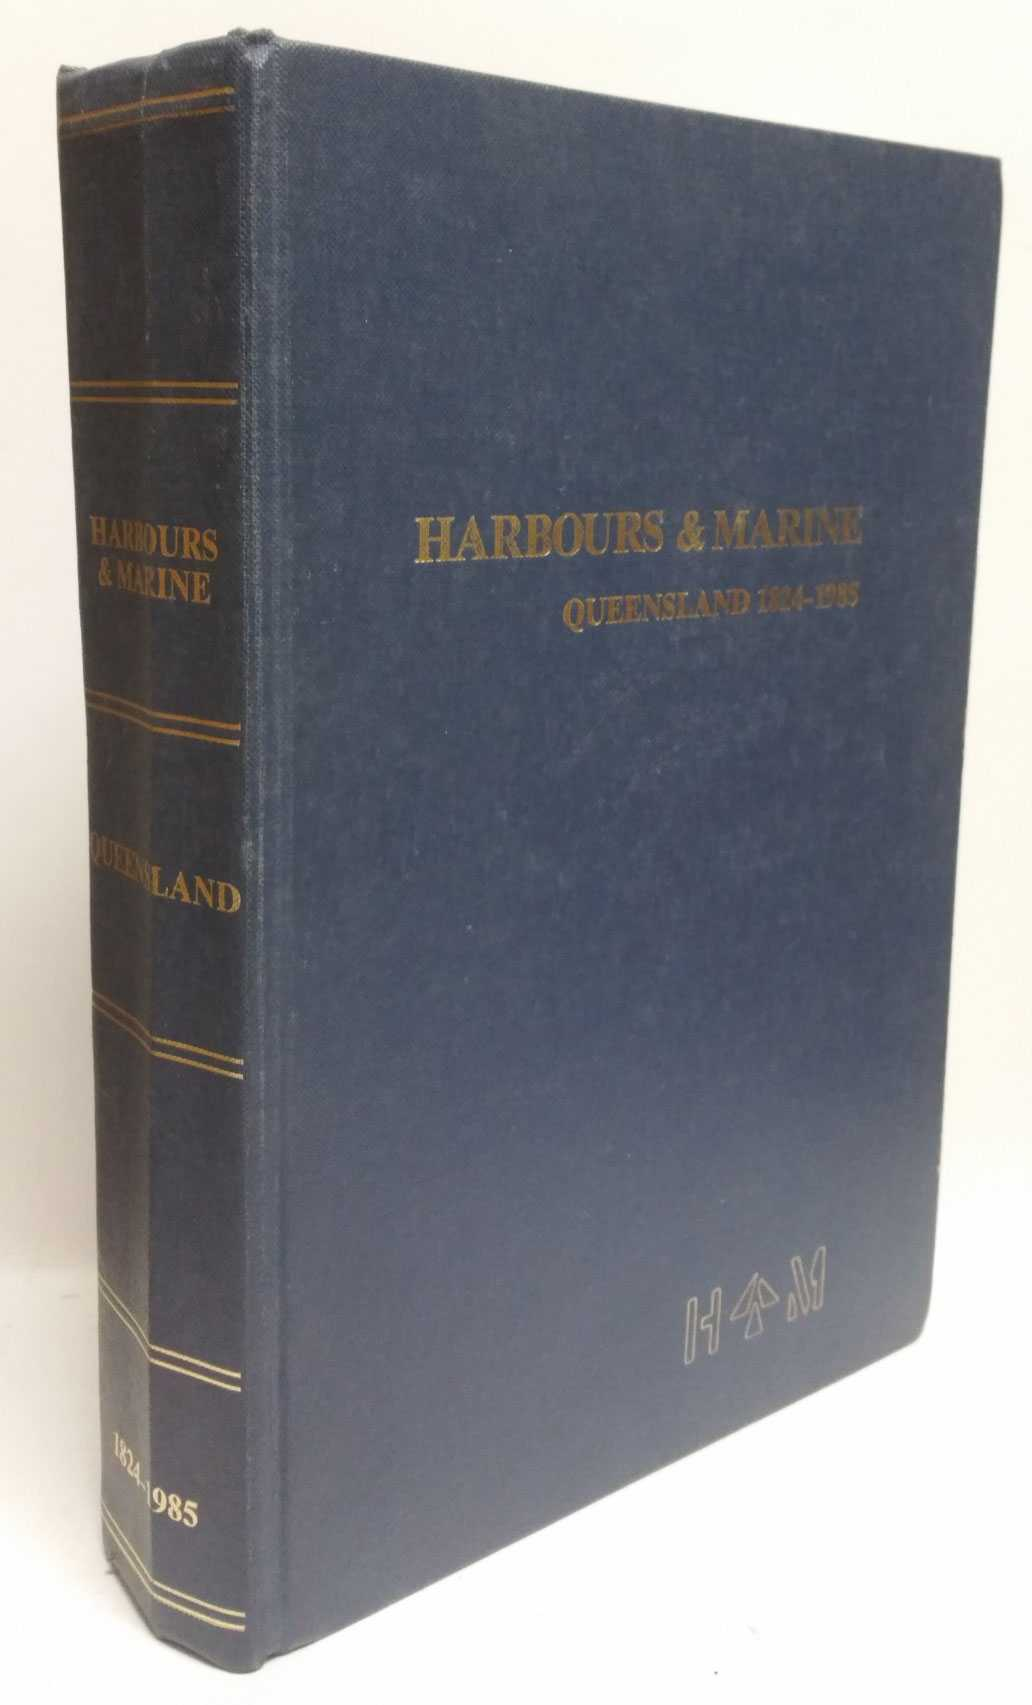 Harbours & Marine: Port & Harbour Development In Queensland From 1824 to 1985, Department of Harbours & Marine Queensland